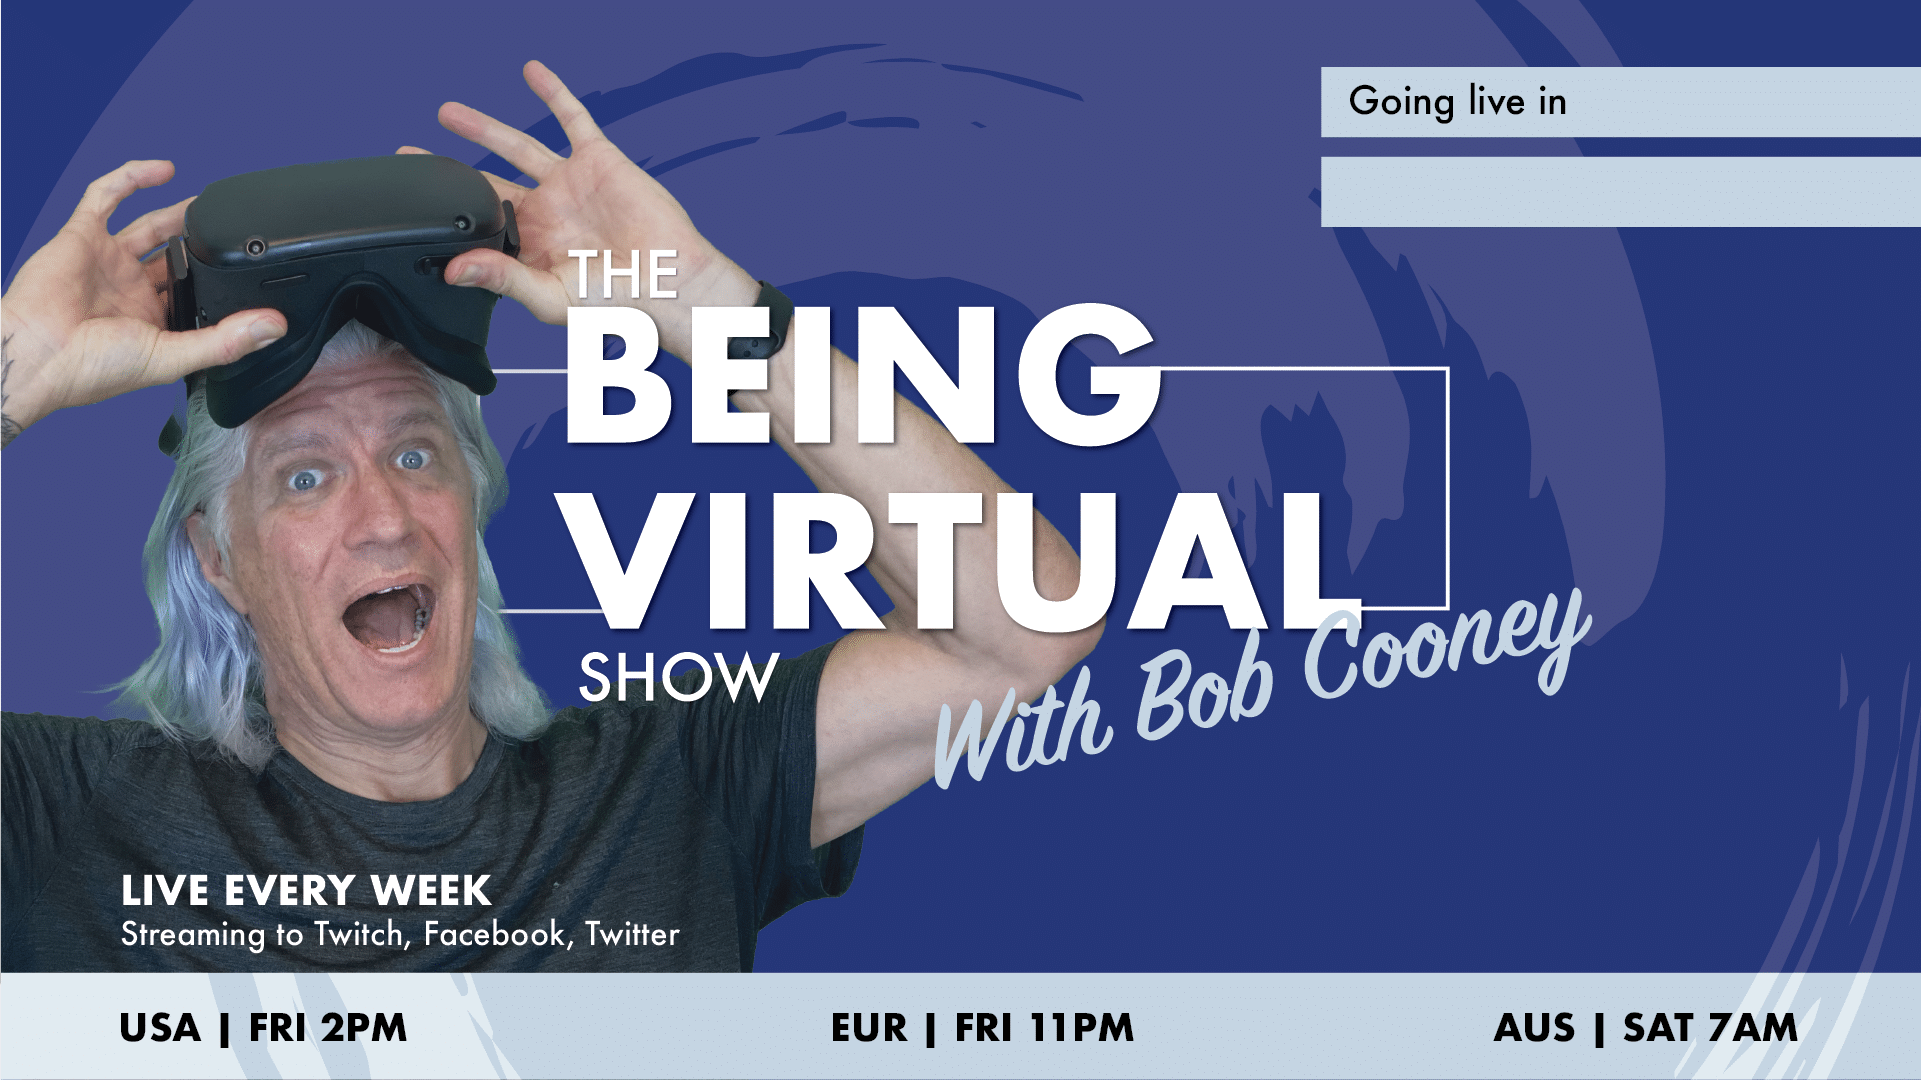 The Being Virtual Show with Bob Cooney